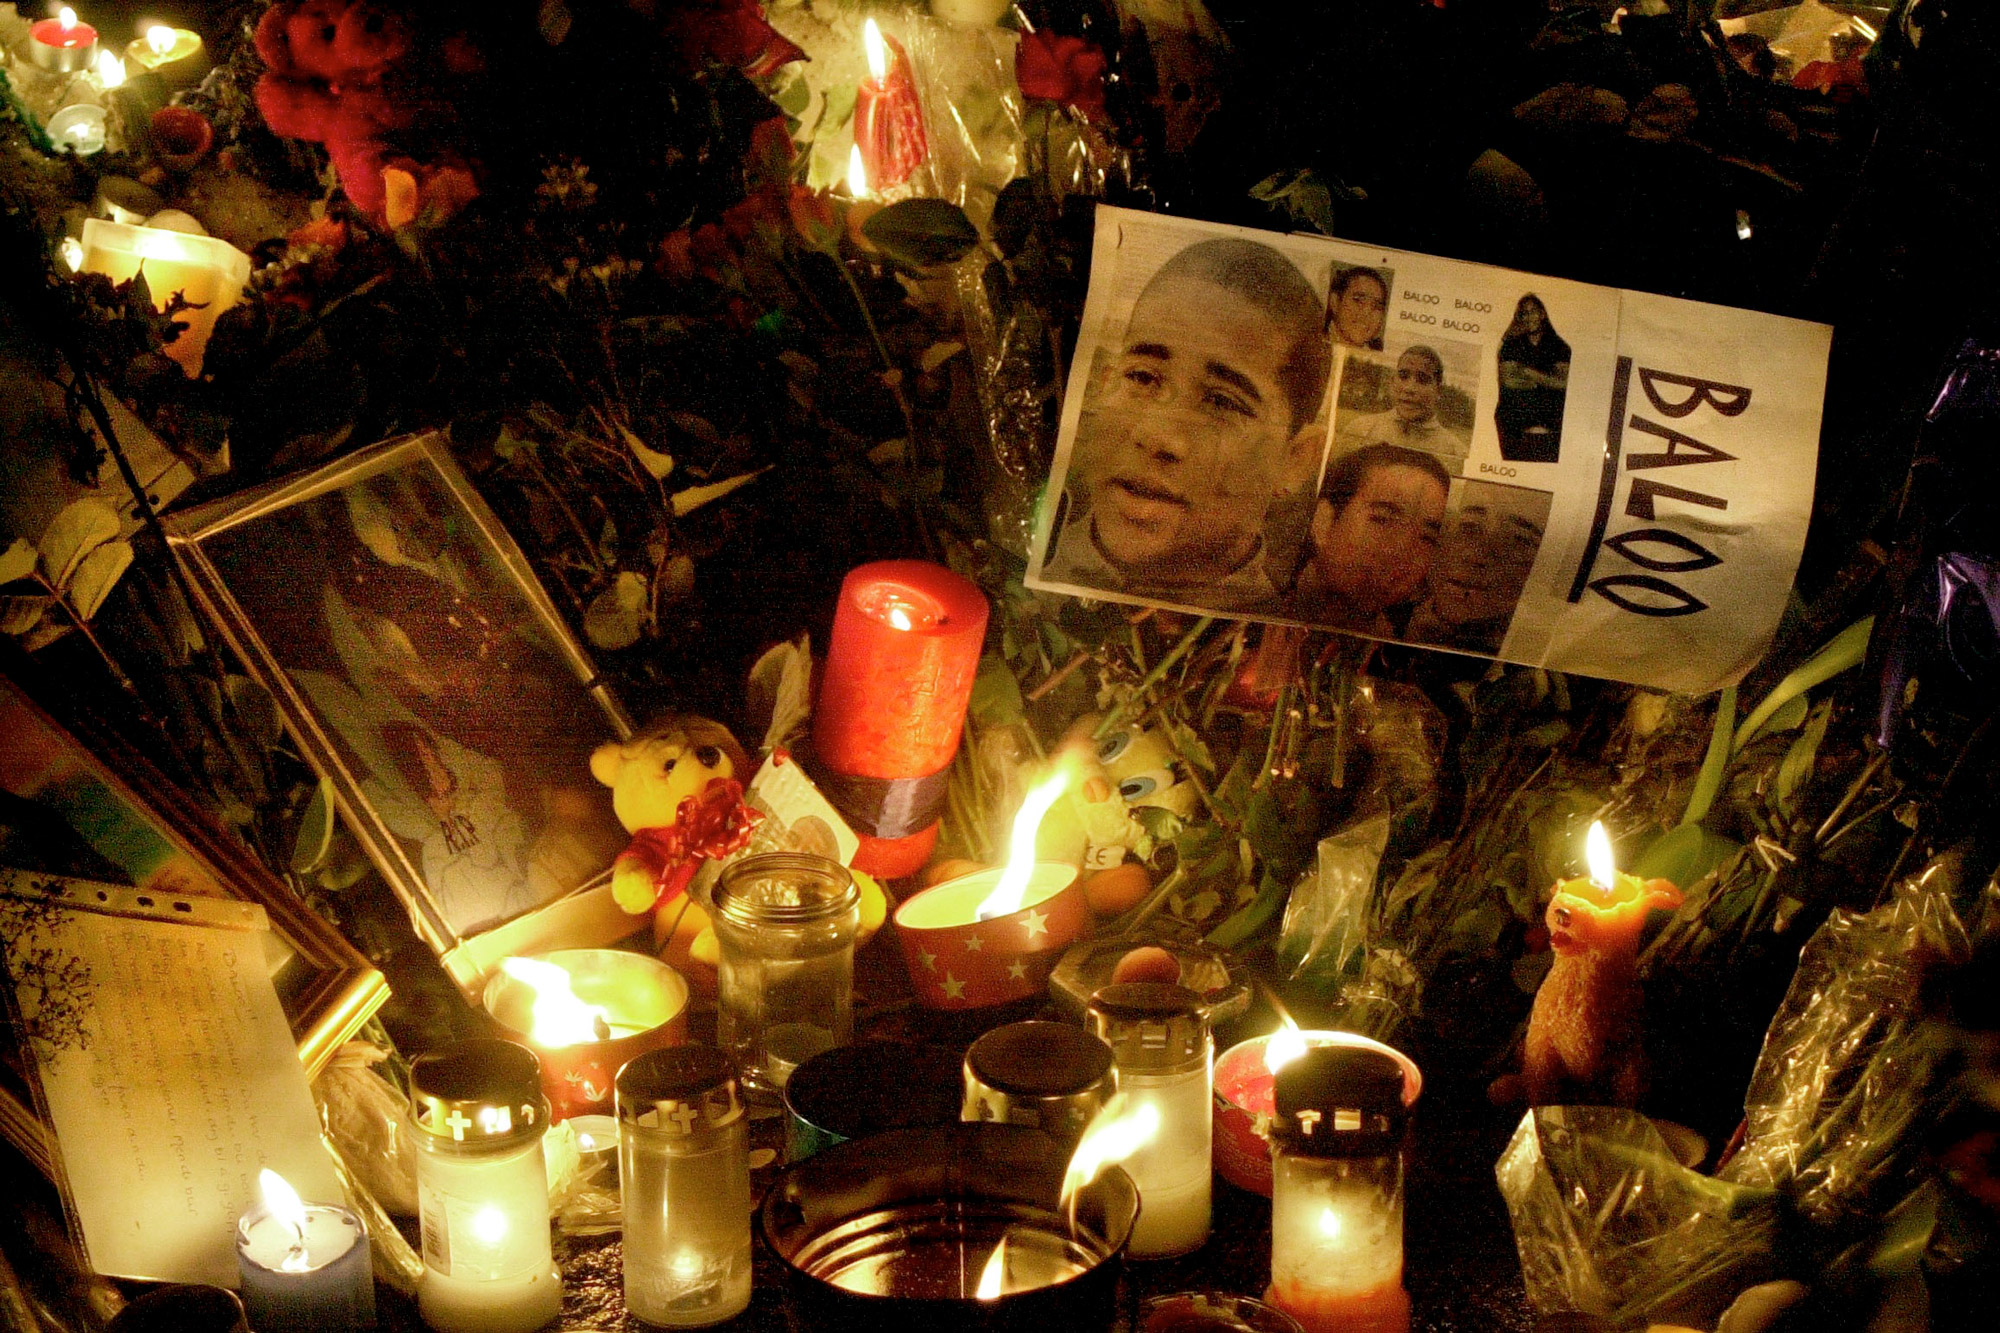 28 January 2001: Photos and candles cover the ground at the spot where Benjamin Hermansen was knifed and killed in a racially motivated attack. (Photograph by Jeanette Landfald/ All Over Press Norway/ Liaison)